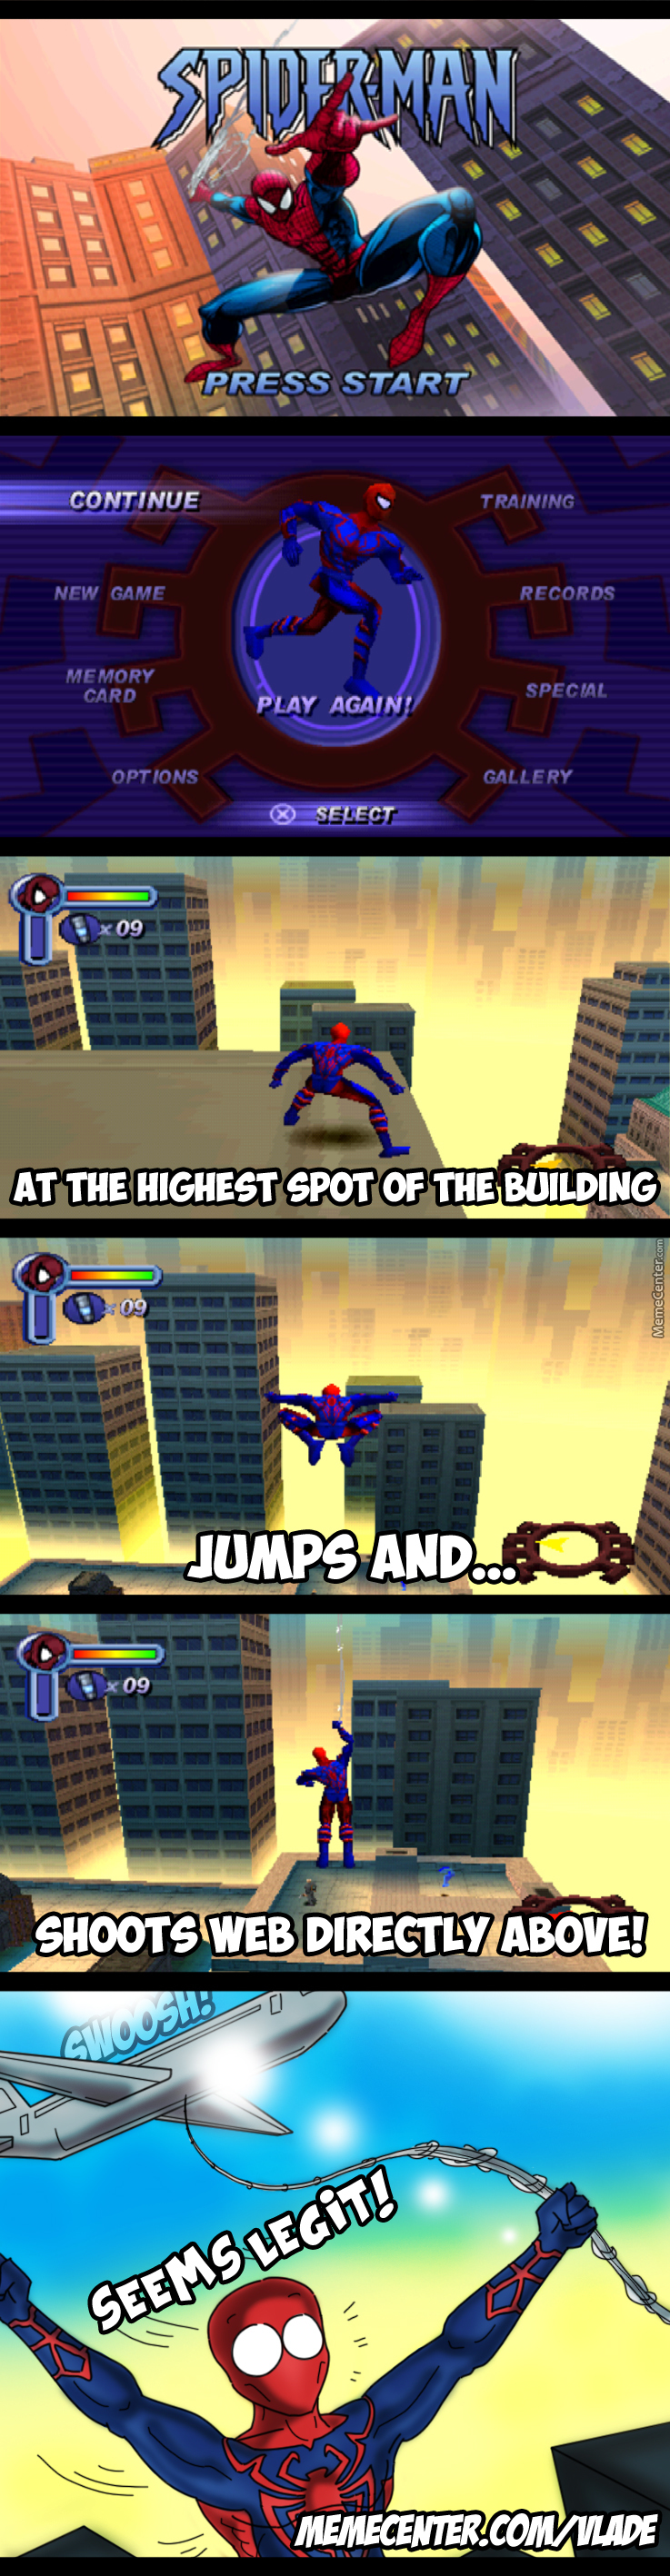 Spiderman Logic!